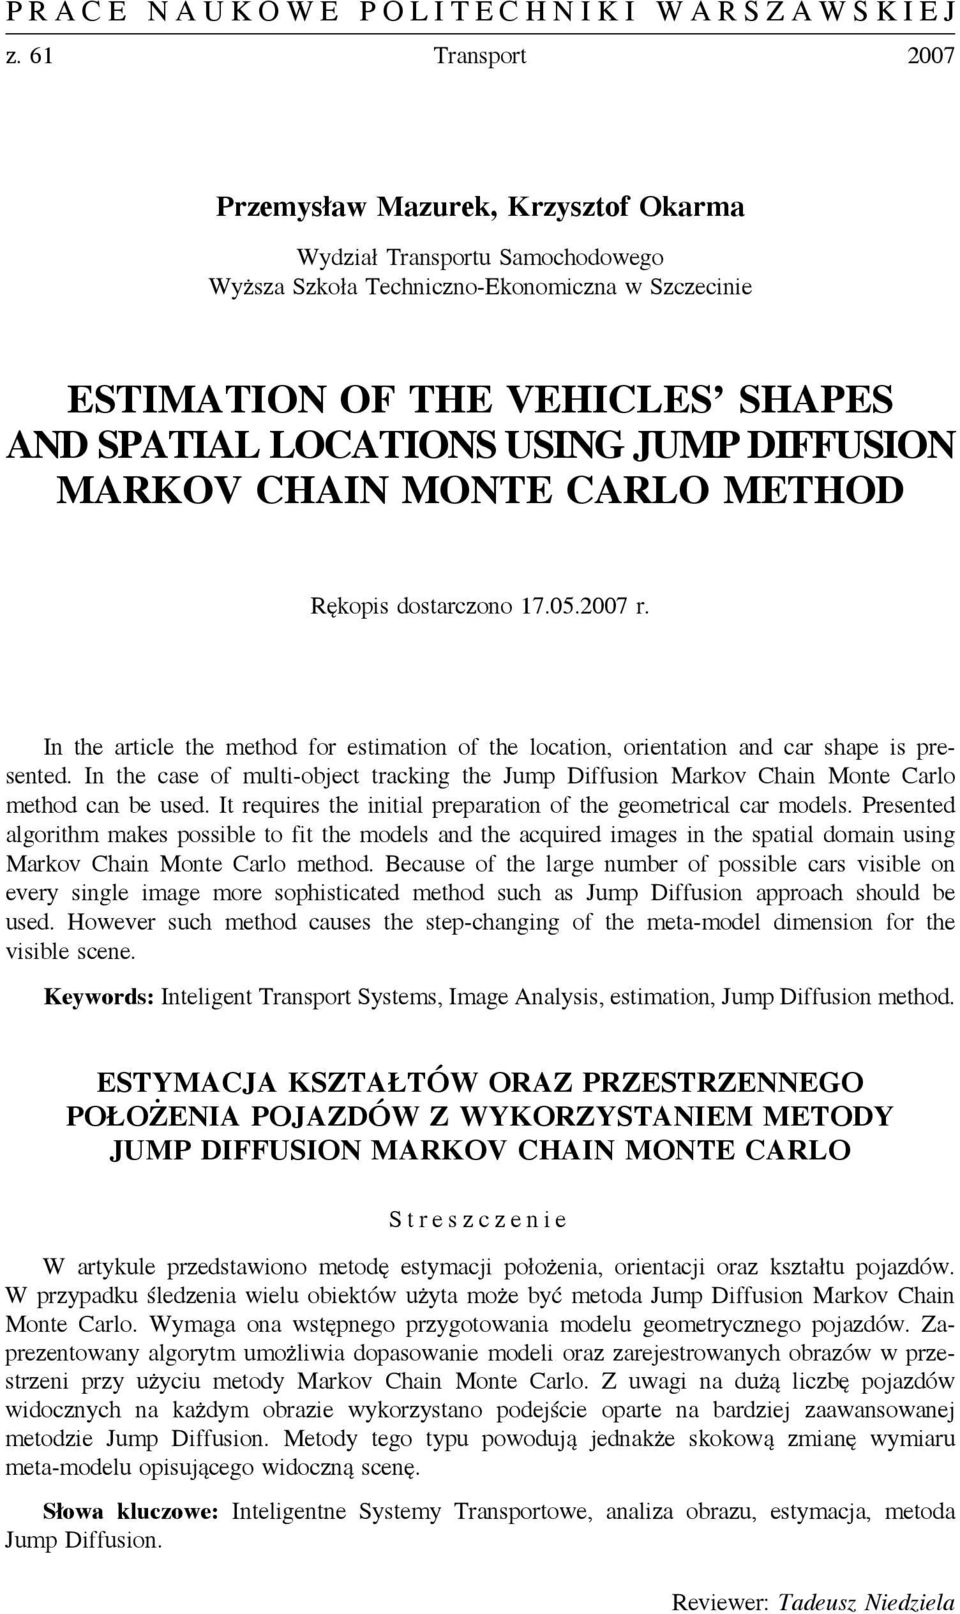 In the case of multi-object tracking the Jump Diffusion Markov Chain Monte Carlo method can be used. It requires the initial preparation of the geometrical car models.